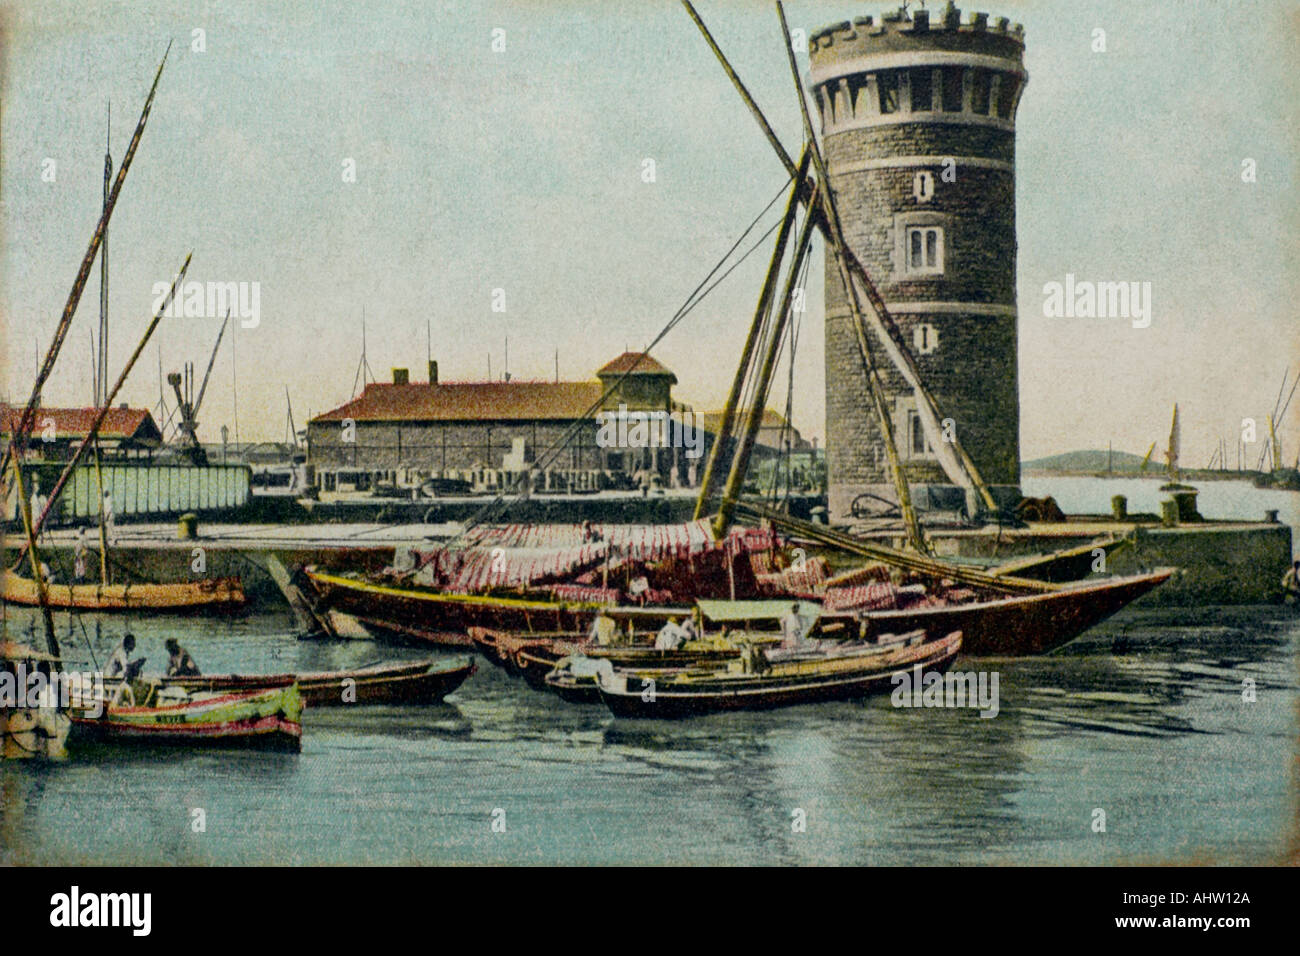 AAD 91714 Old antique vintage print of Princess Dock boats Bombay mumbai INDIA - Stock Image